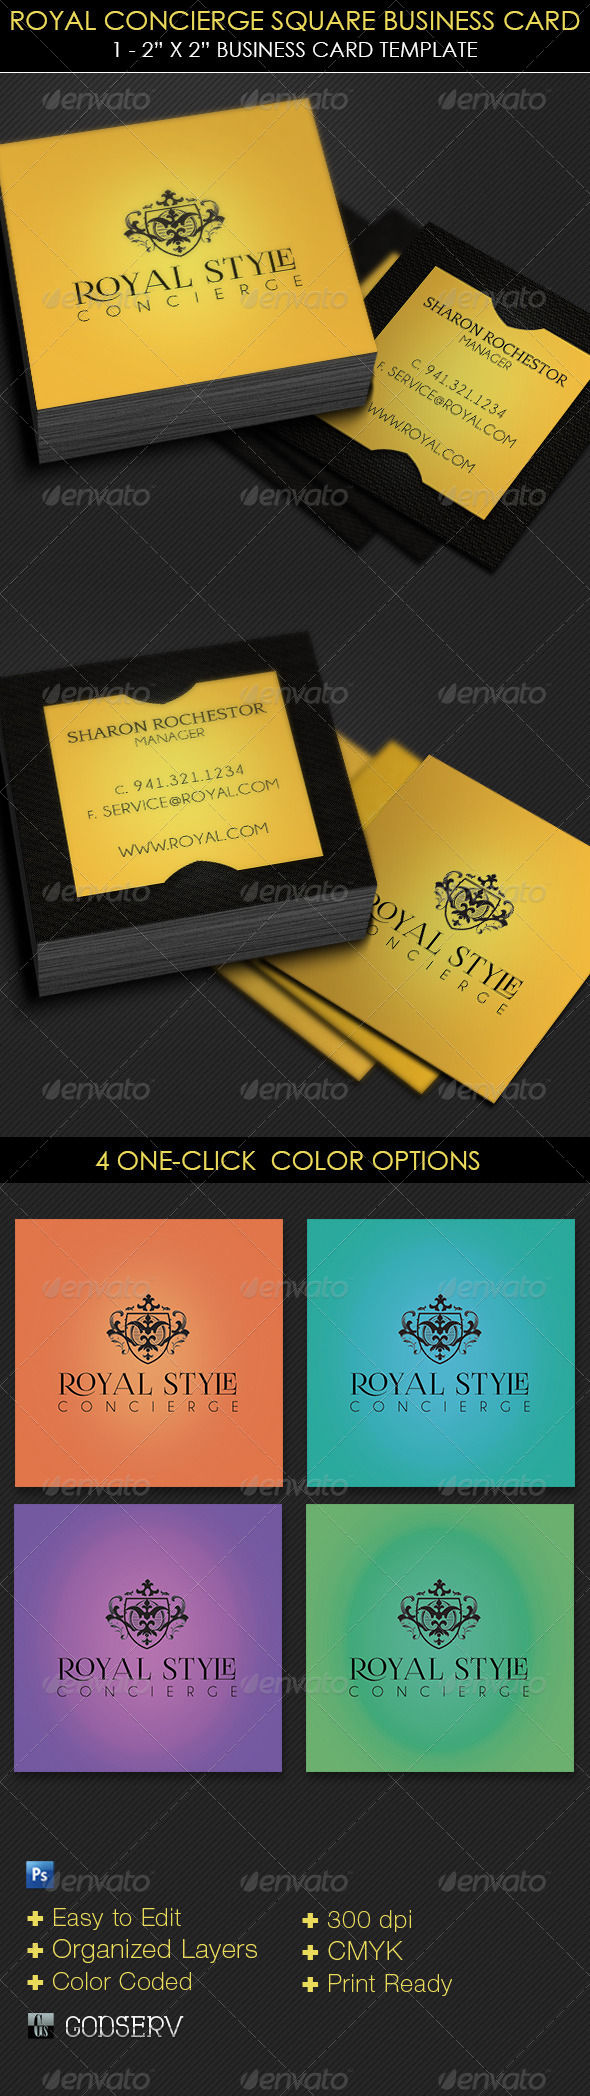 GraphicRiver Royal Concierge Square Business Card Template 6193802